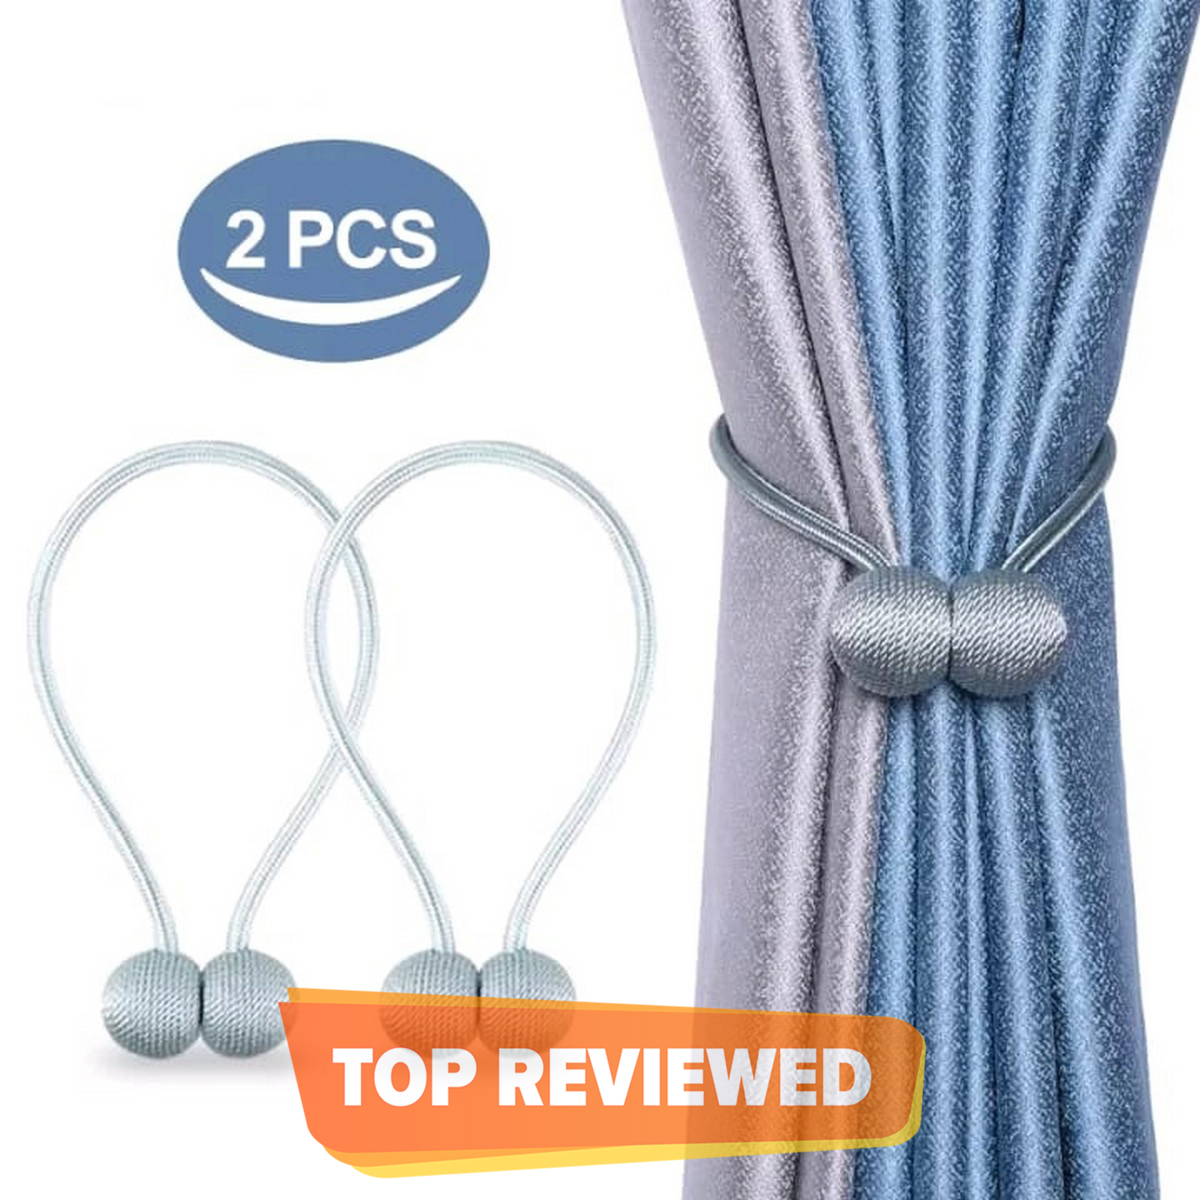 2 PCS Magnetic Curtain Buckle Magnetic Curtain Tiebacks Convenient Drape Tie European Style Decorative Weave Rope Curtain Rings & Buckles Holder for Window Sheer Blackout Draperies, Parday